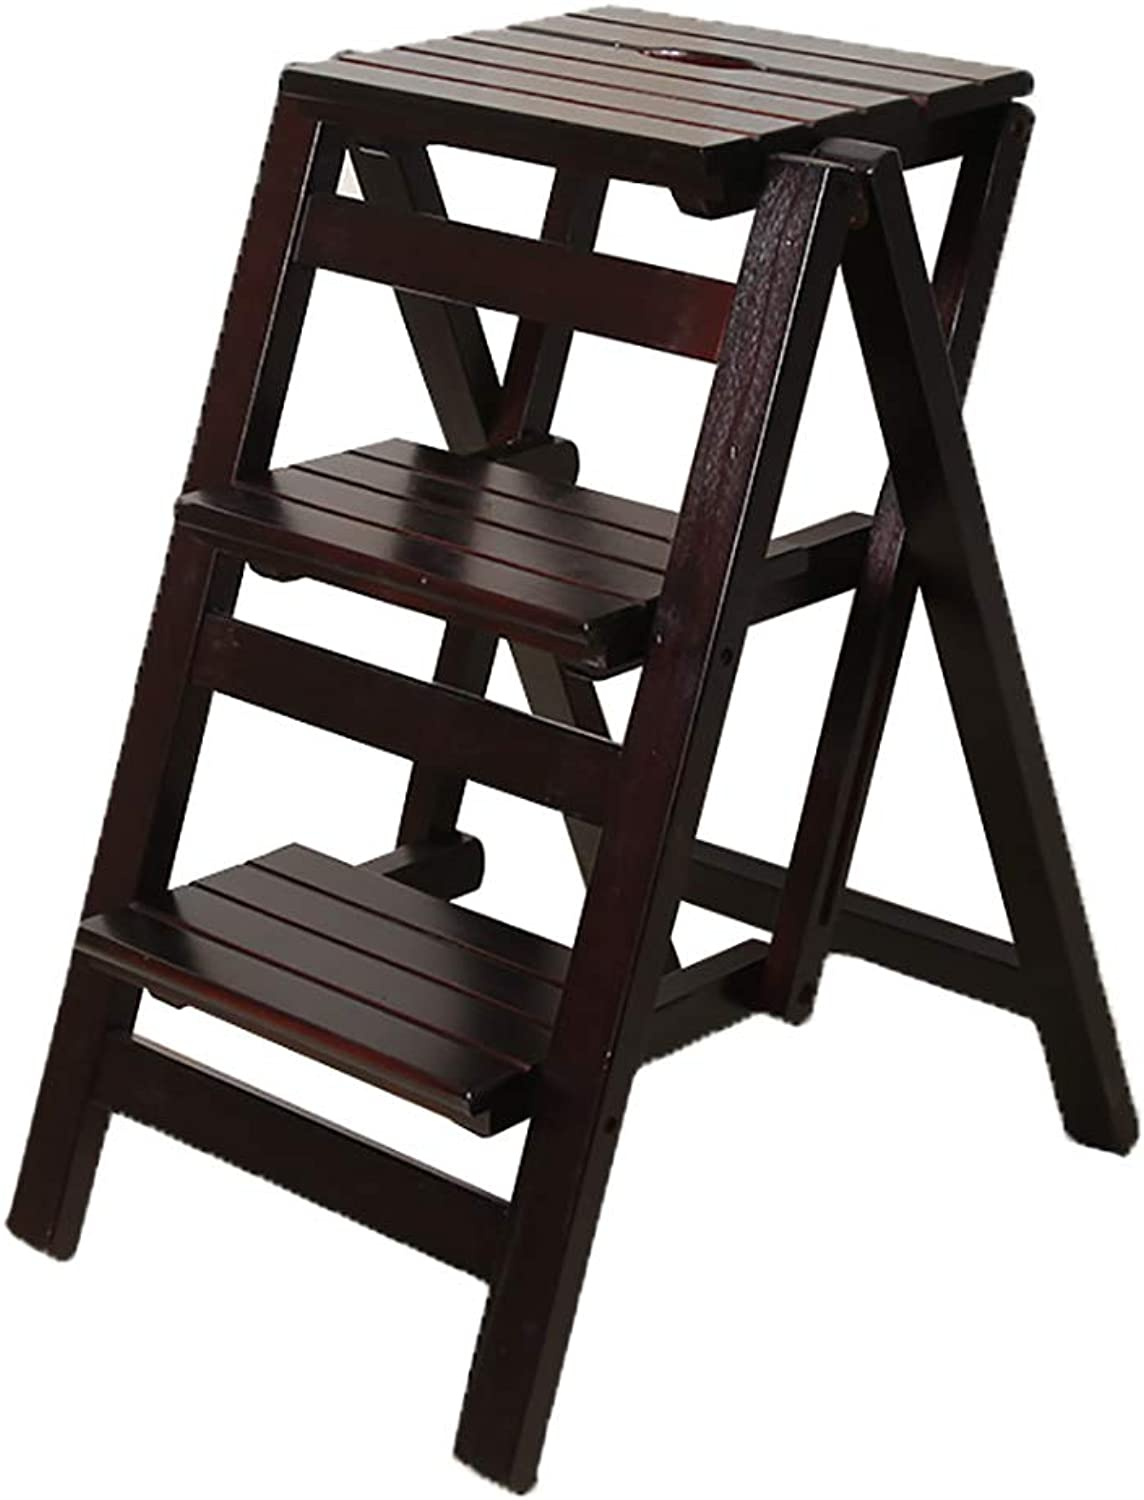 Step stools stools stools Wood Multifunctional Ladder Stool Change shoes Bench, Folding Step Stool  2 Tier,3 Tier,4 Tier,Black Walnut (Size   3step) 8109c5